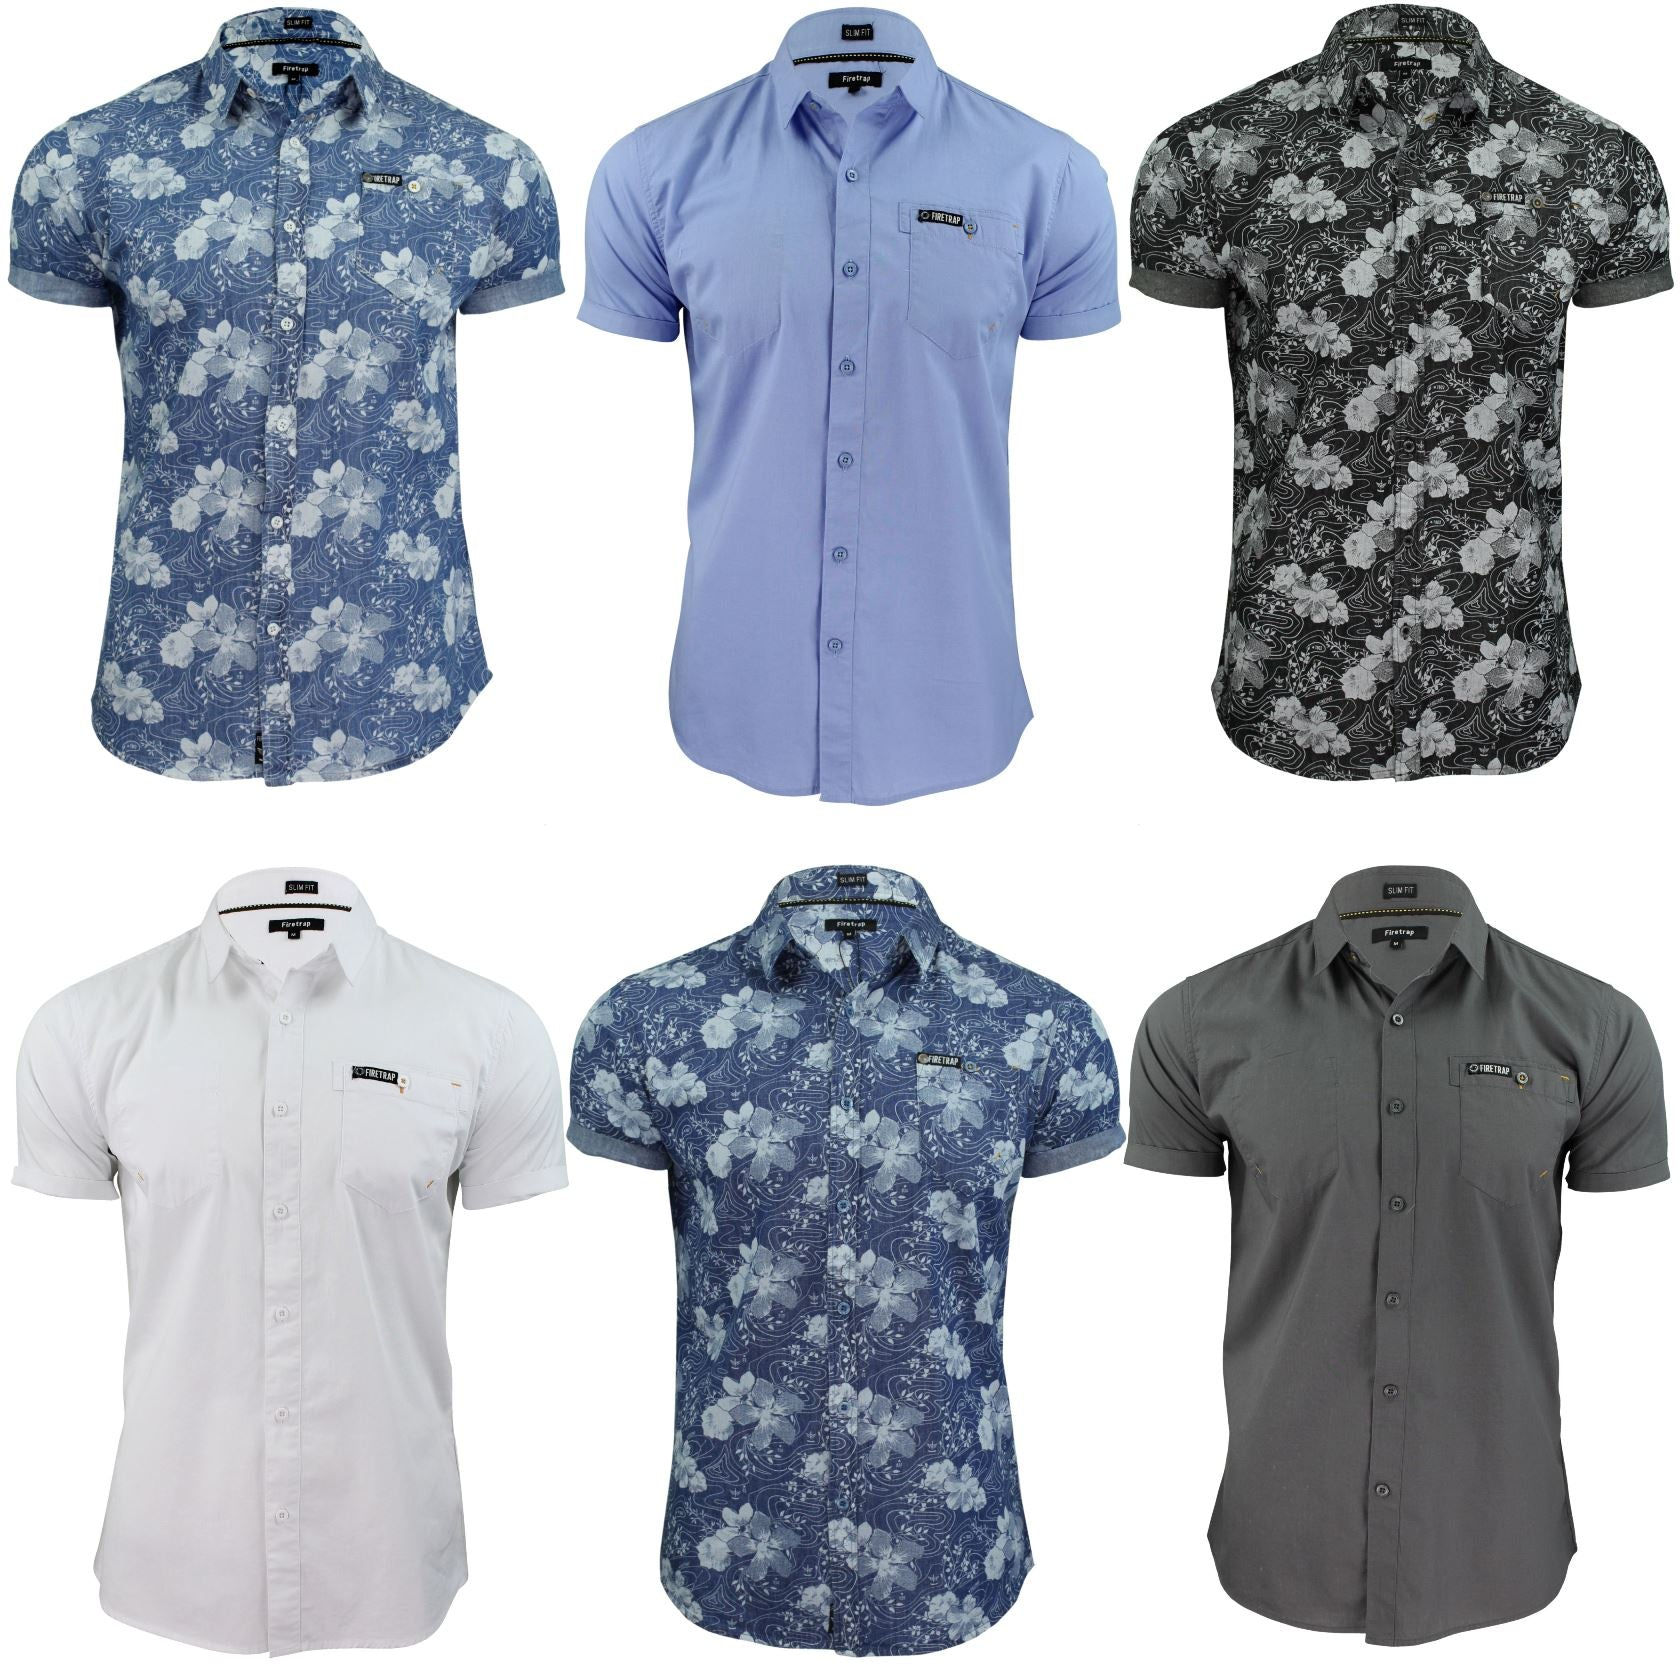 Mens Short Sleeved Shirt by Firetrap-Main Image